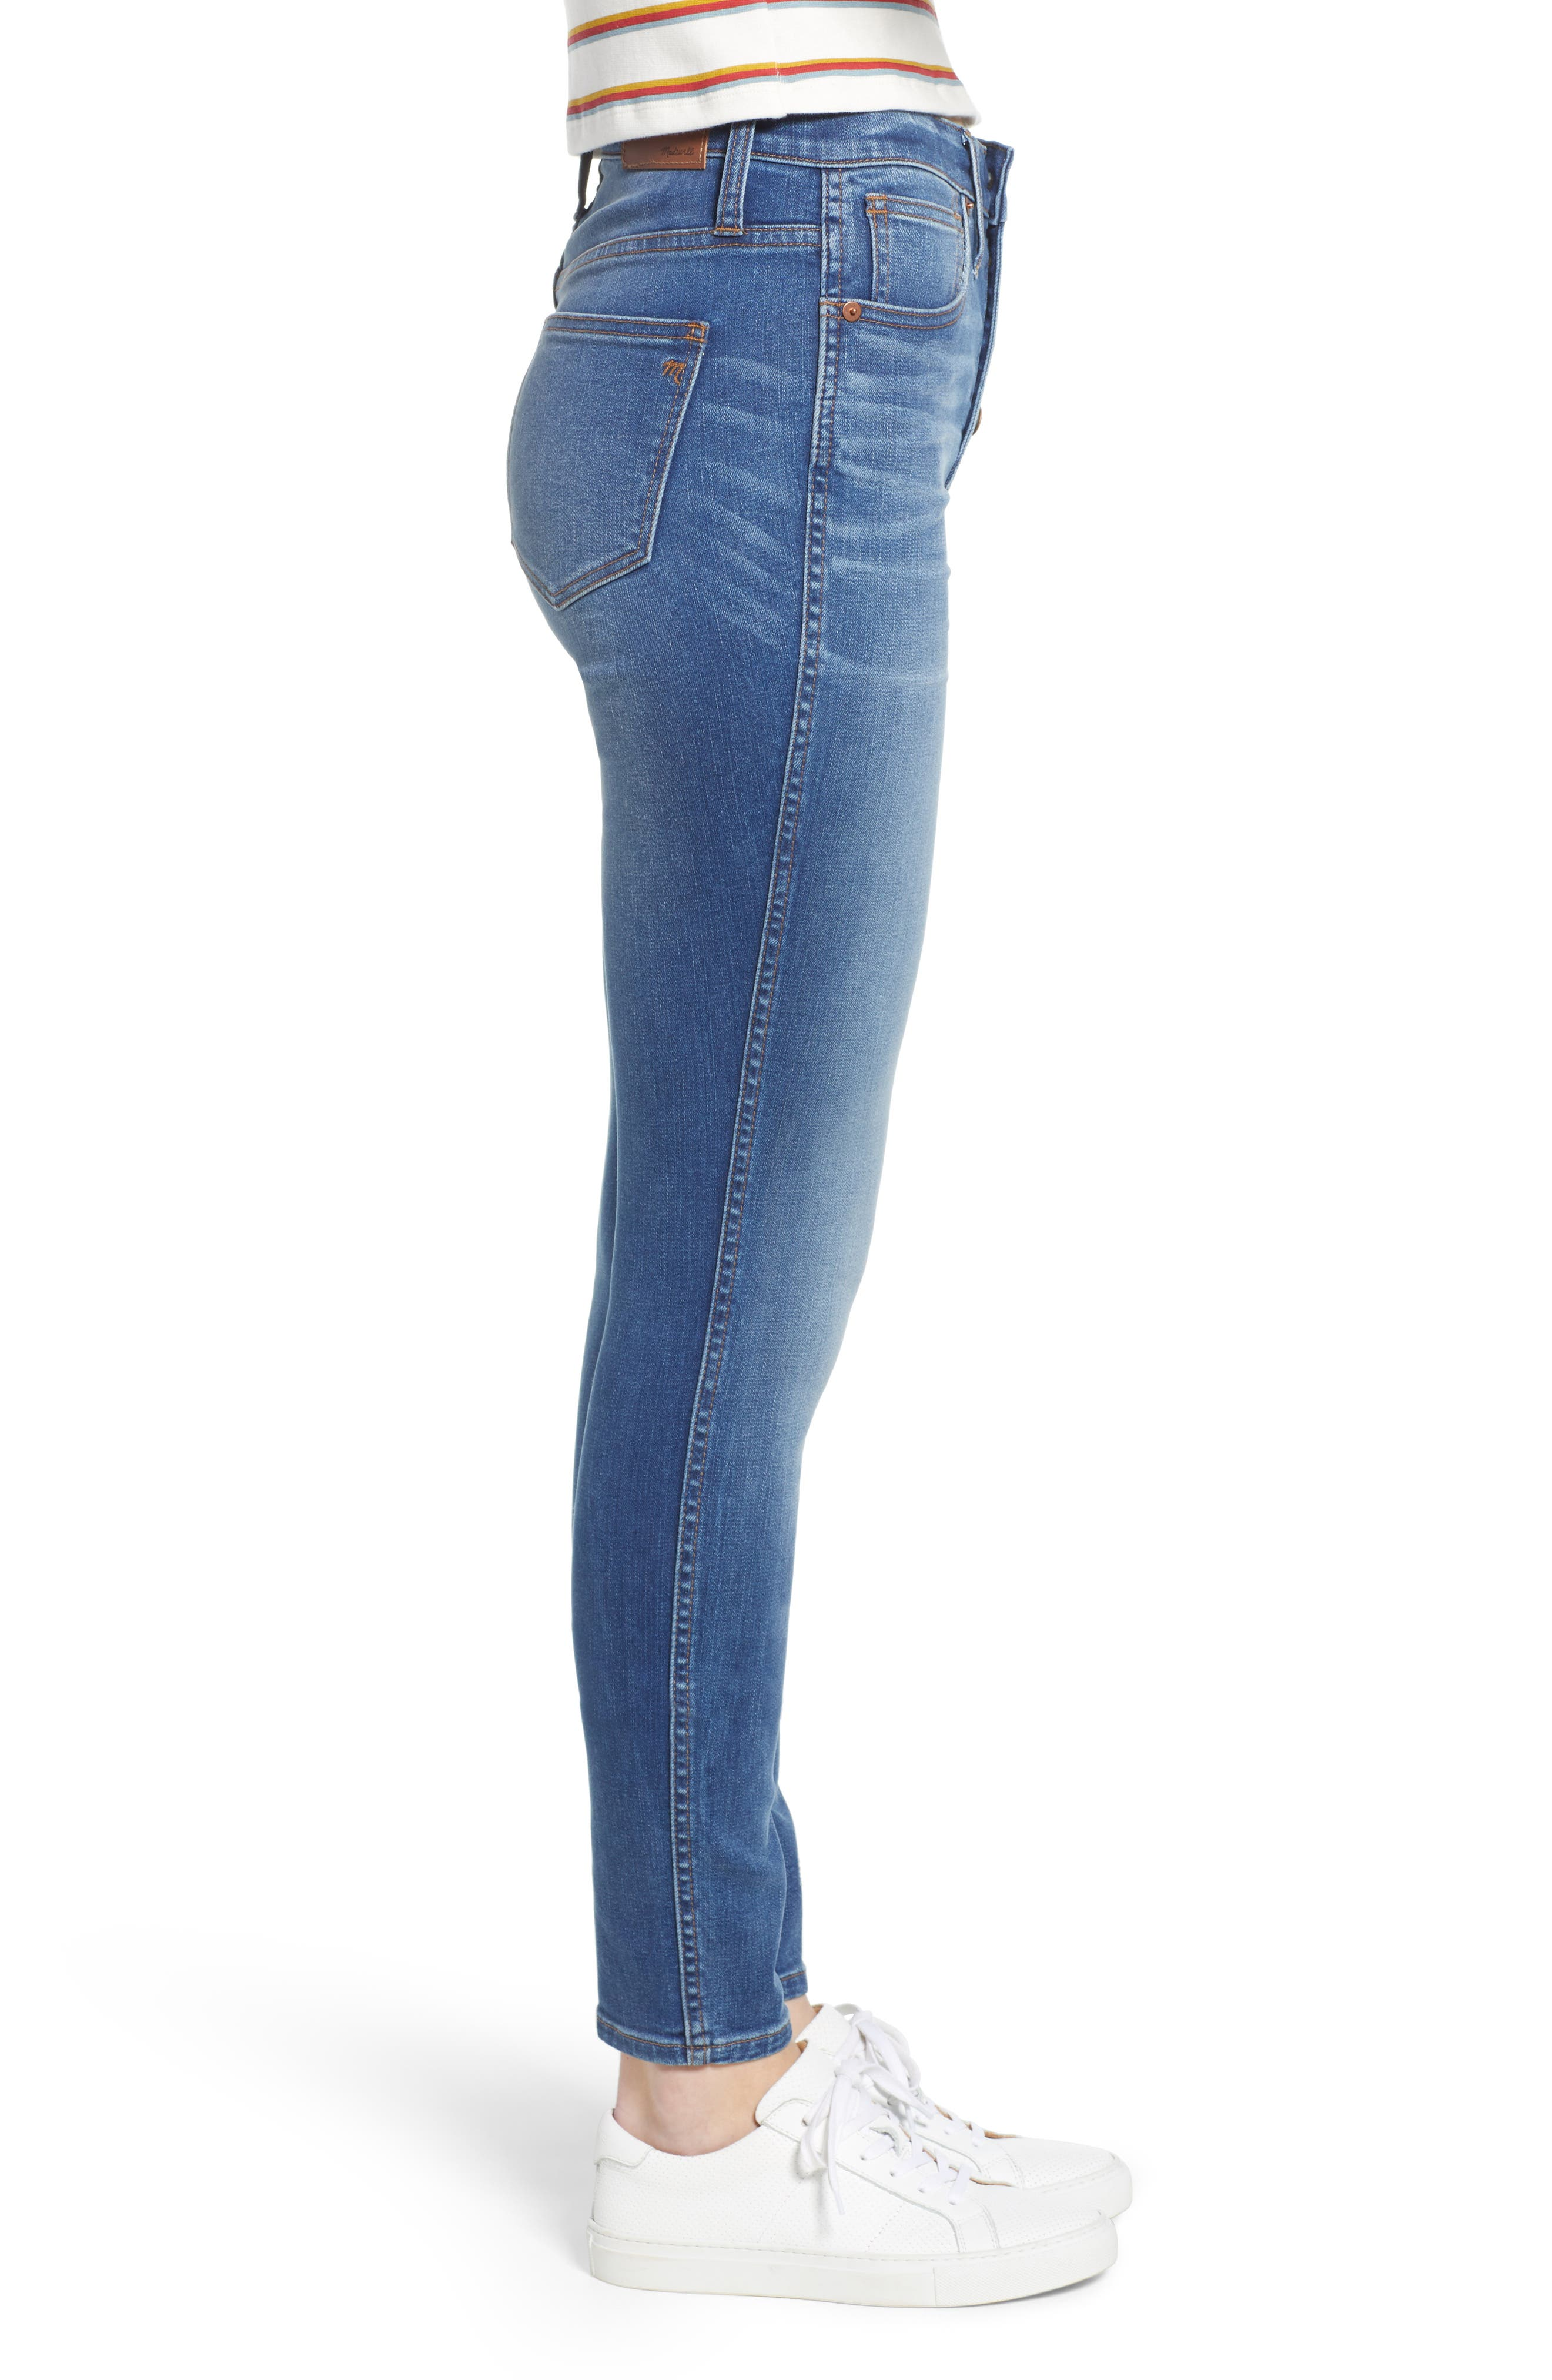 10-Inch High Waist Skinny Jeans,                             Alternate thumbnail 3, color,                             400